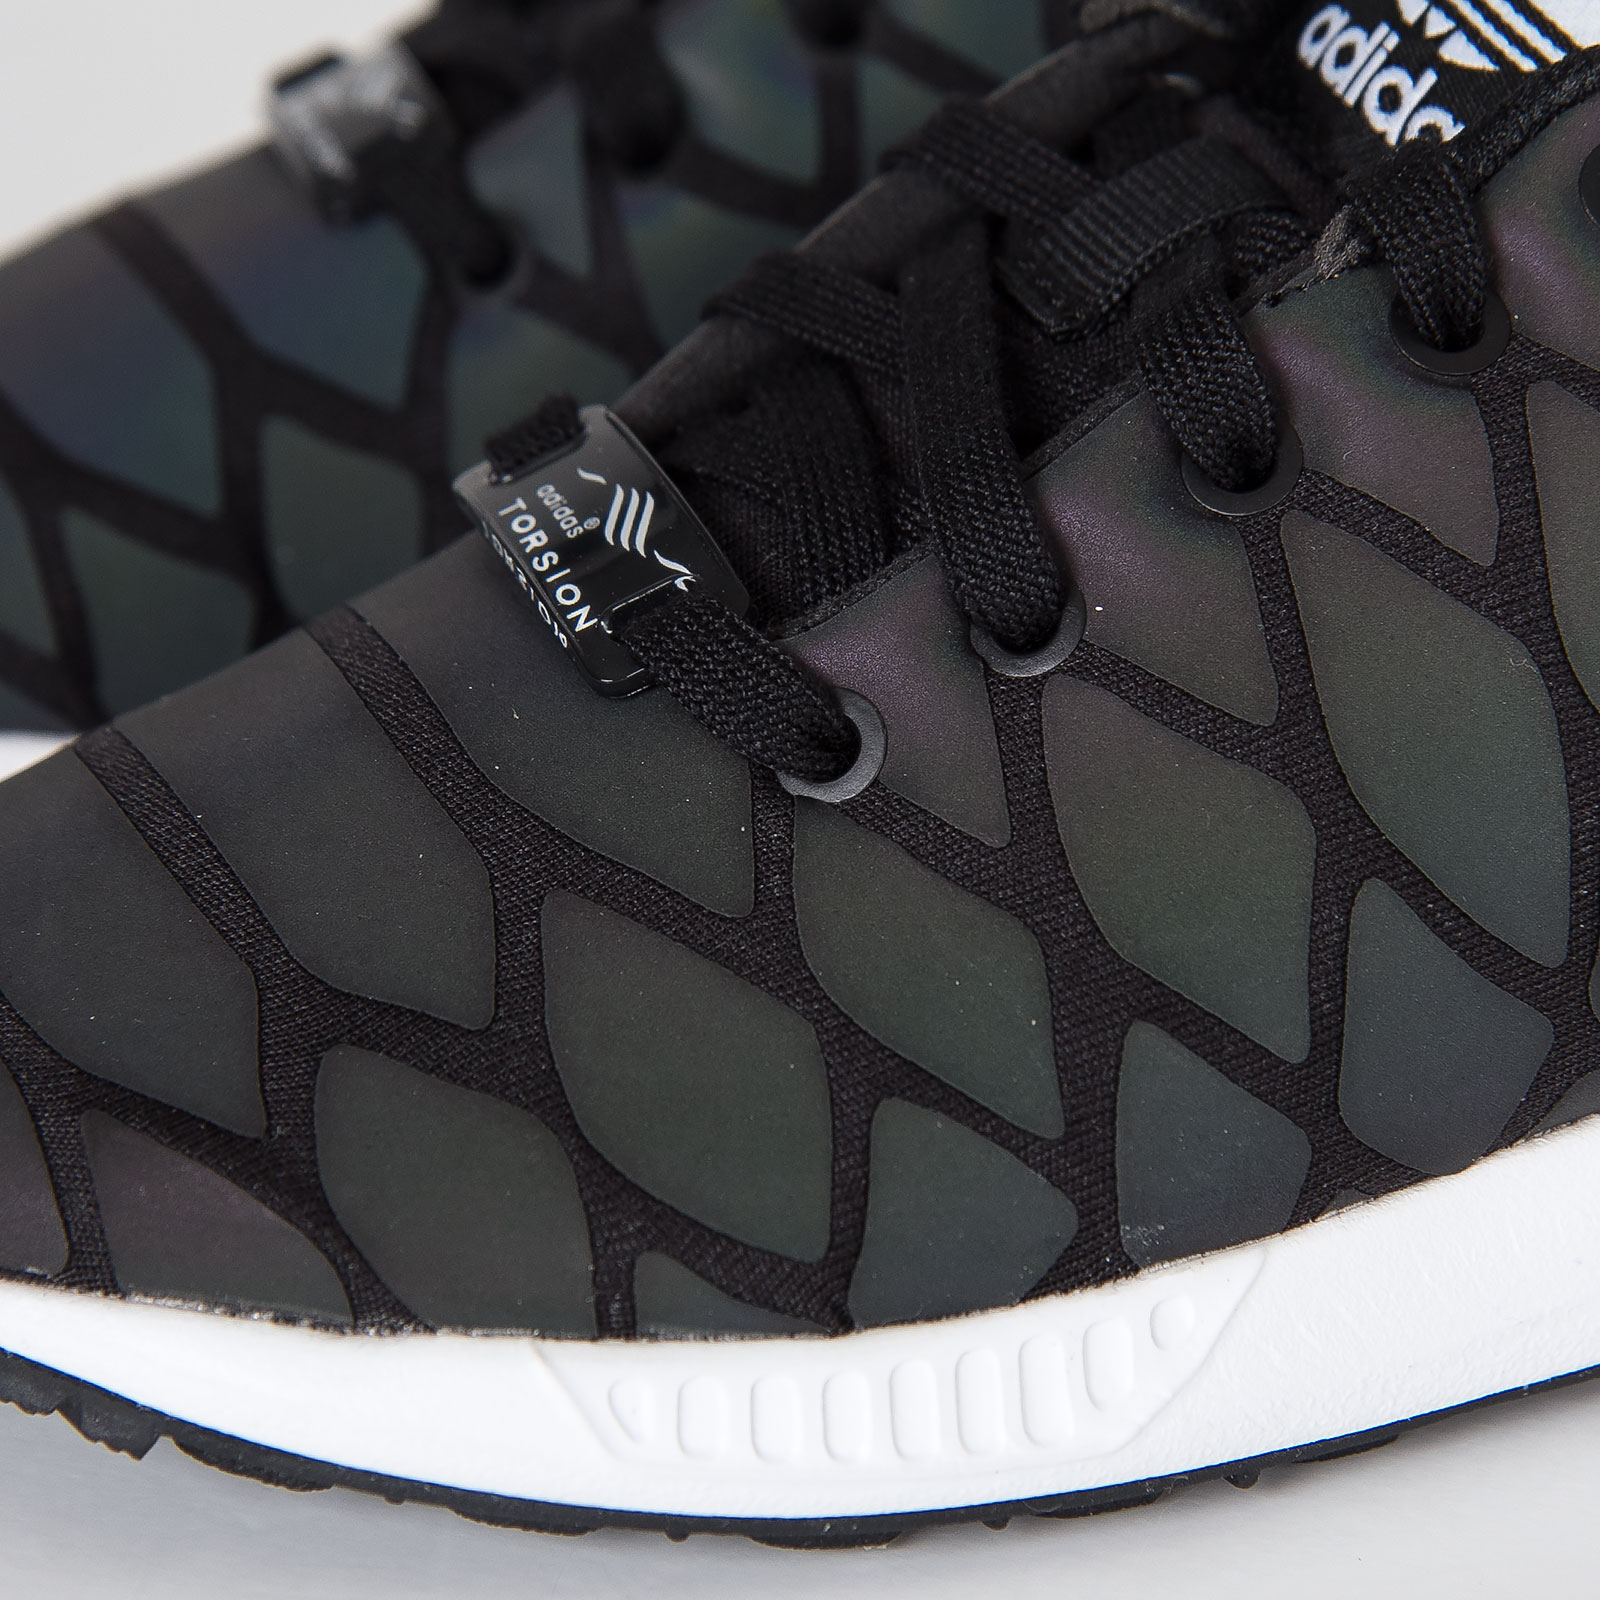 save off 91d7f be39f adidas ZX Flux Xenopeltis - S78649 - Sneakersnstuff ...